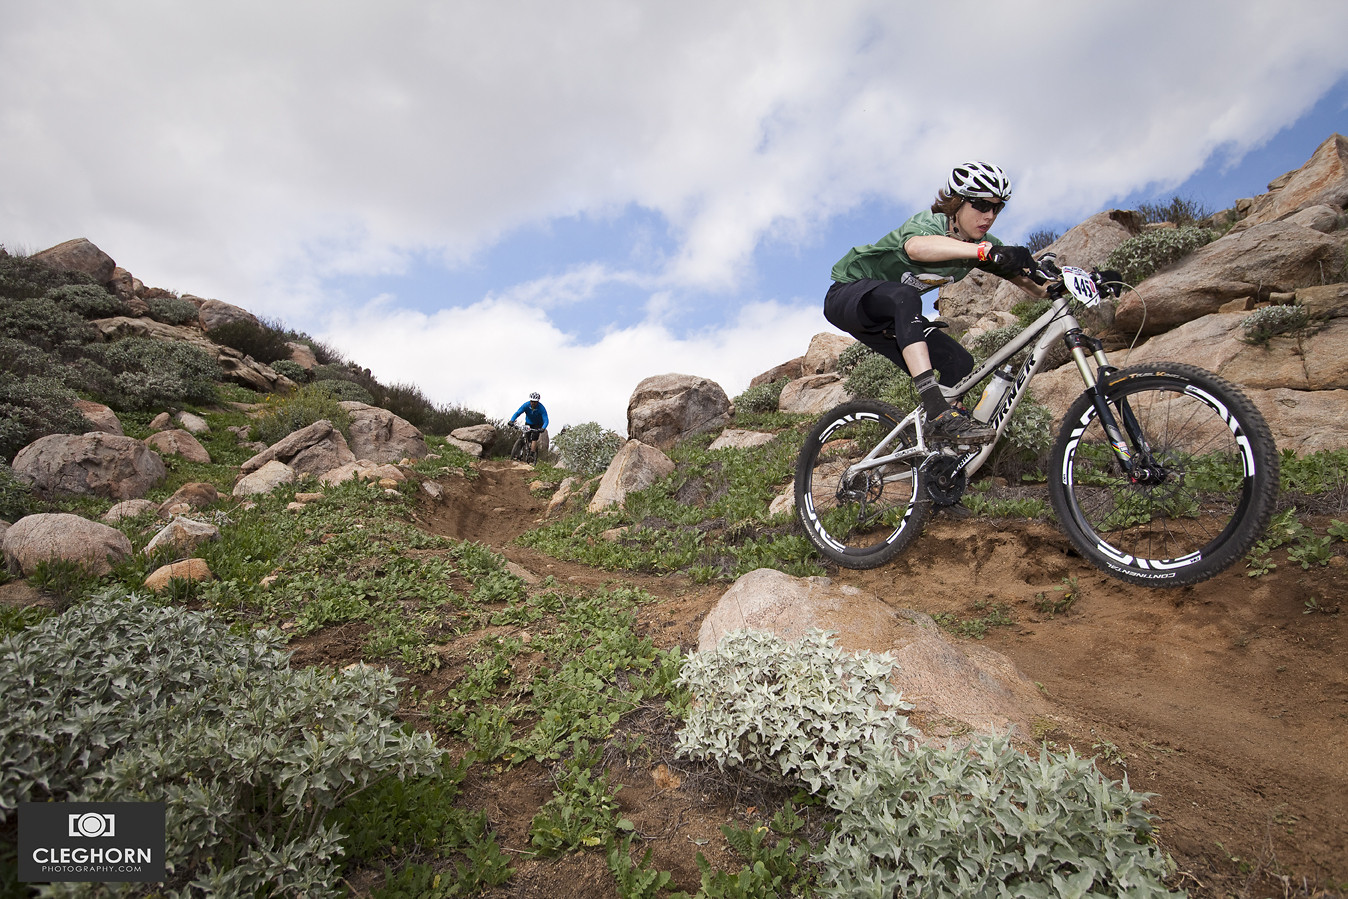 Staying low - Cleghorn Photography - Mountain Biking Pictures - Vital MTB